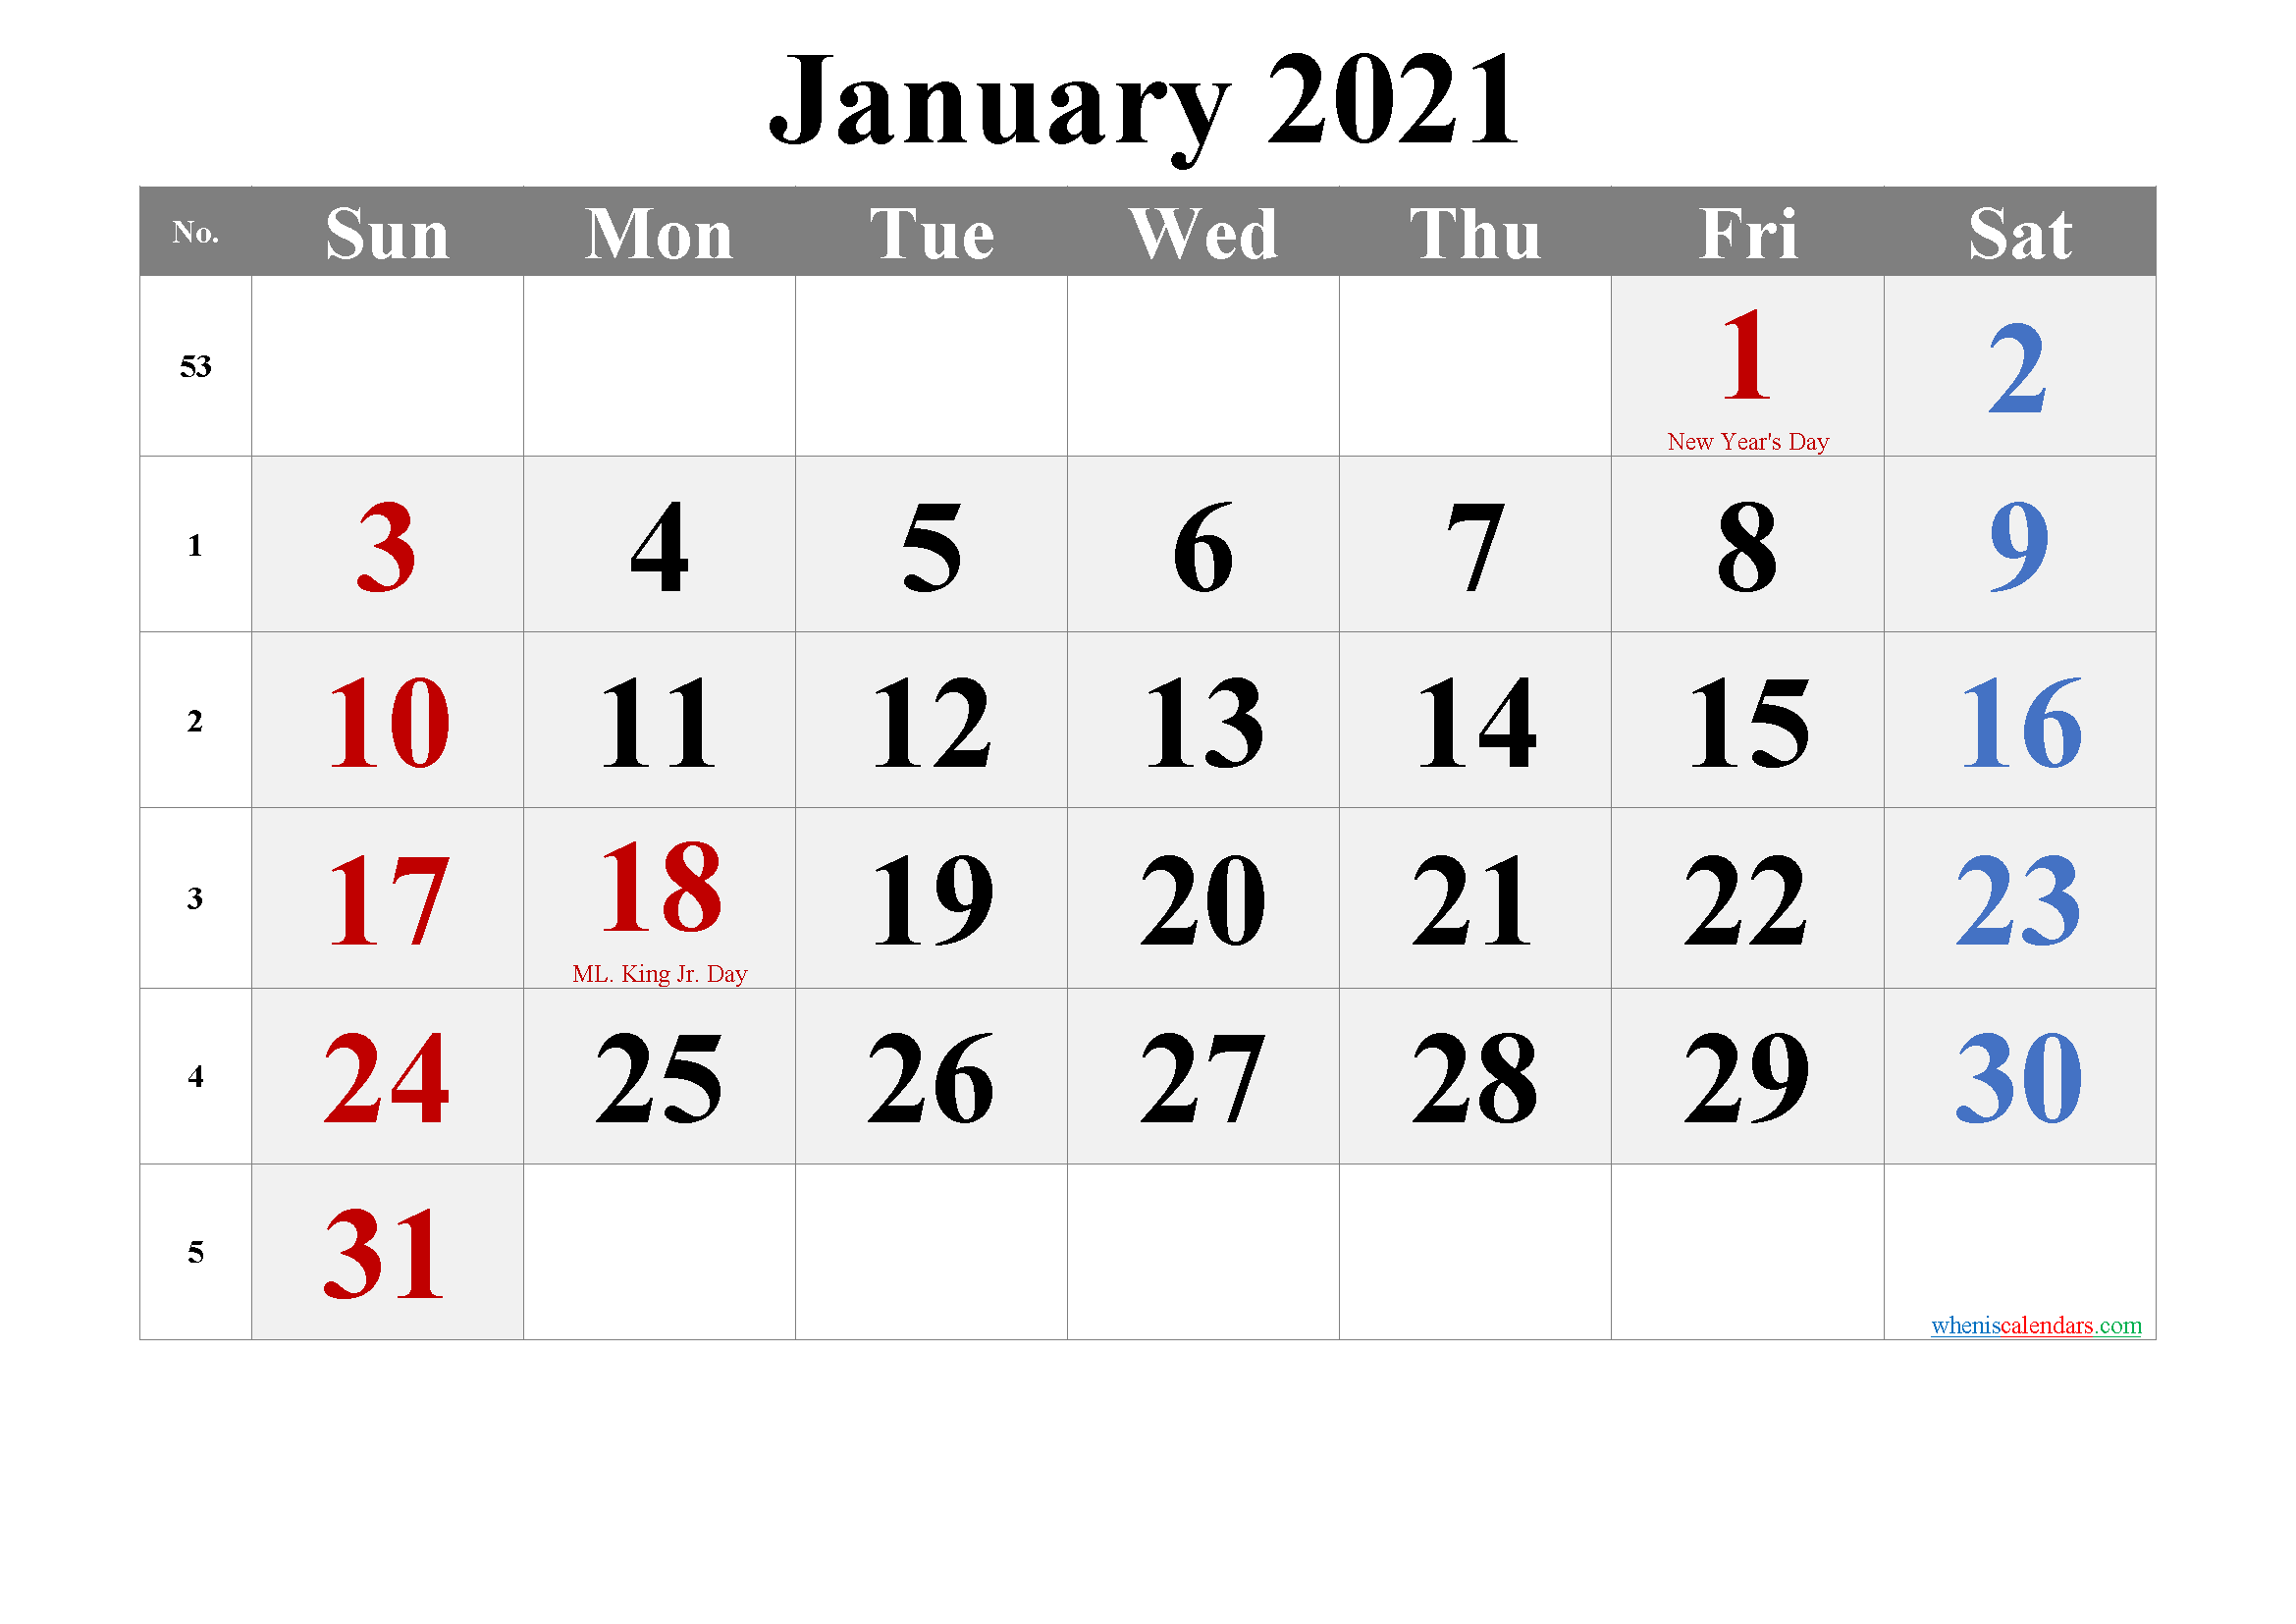 JANUARY 2021 Printable Calendar with Holidays